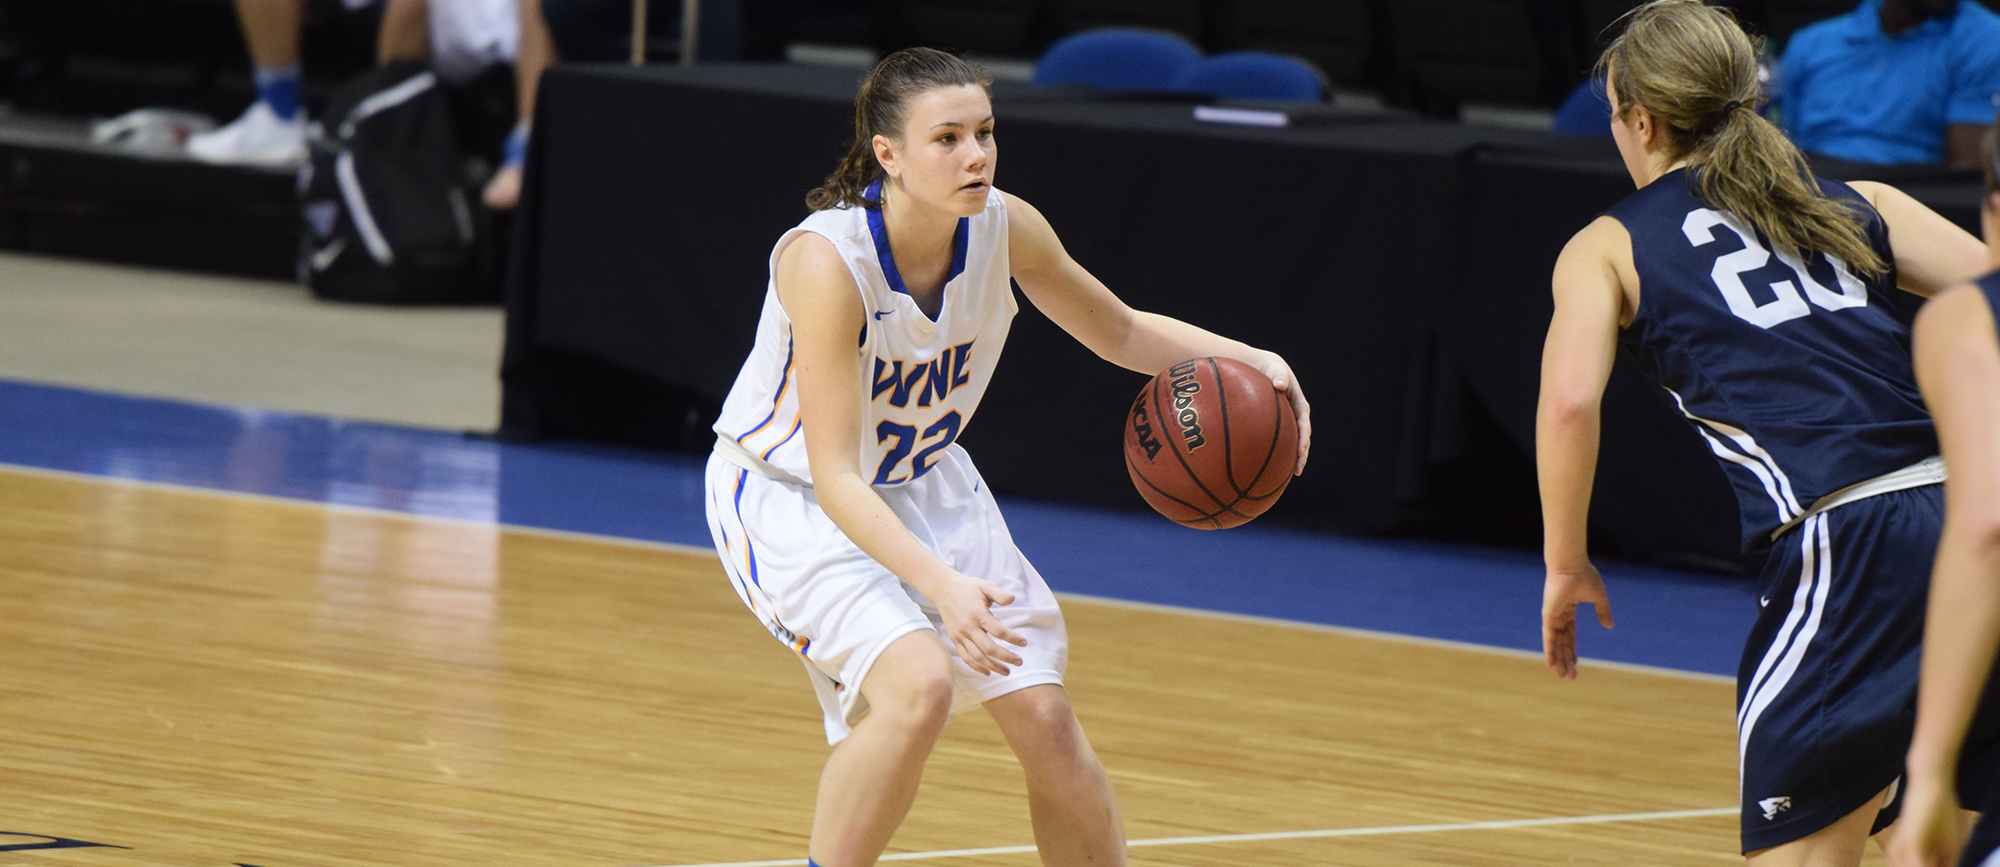 Sophomore Emily Farrell scored a career-high 18 points in Western New England's 65-62 loss at Salve Regina on Saturday.